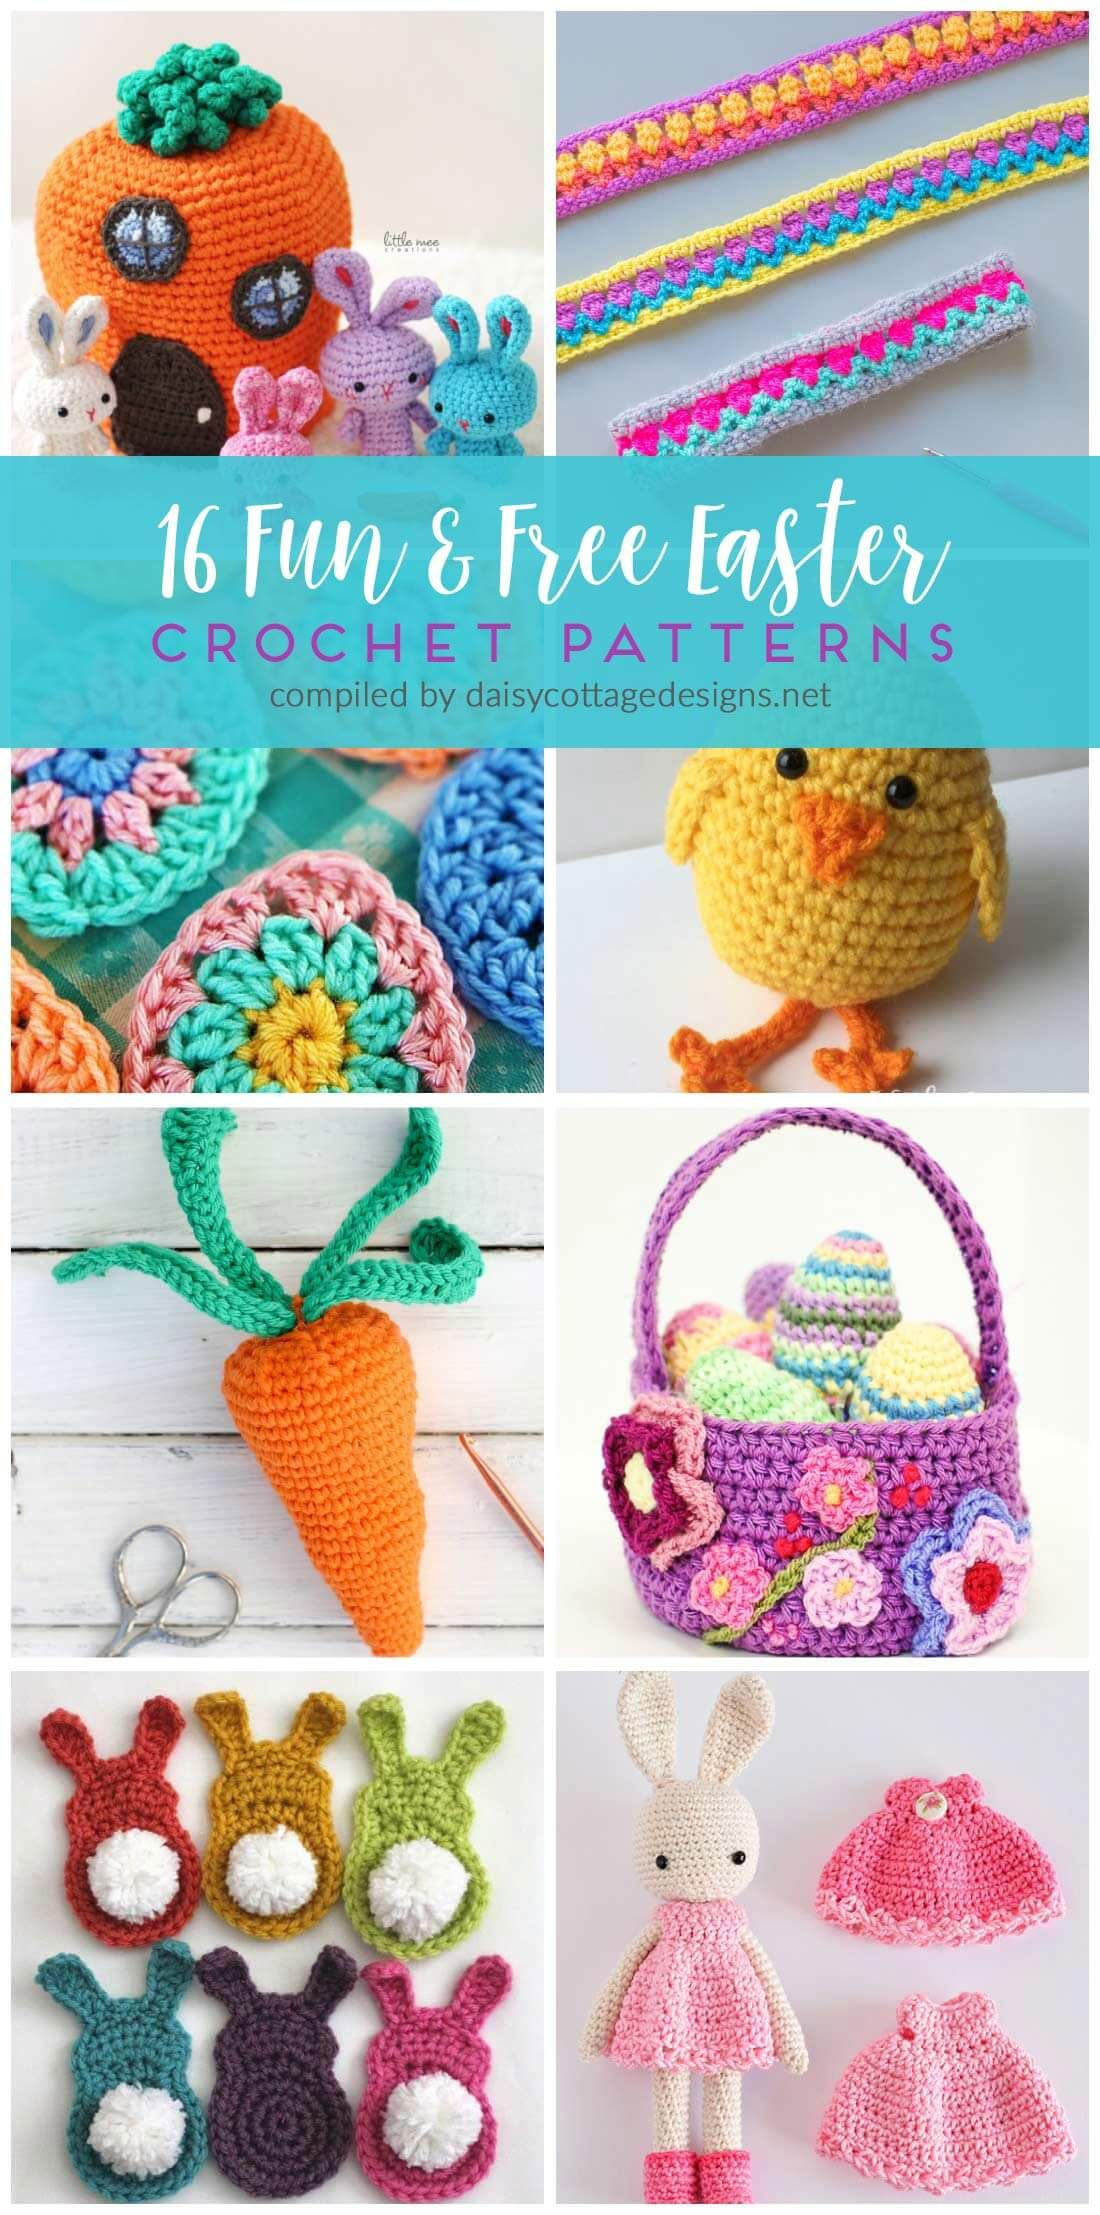 16 free crochet patterns for easter easter crochet patterns 16 free crochet patterns for easter bankloansurffo Gallery